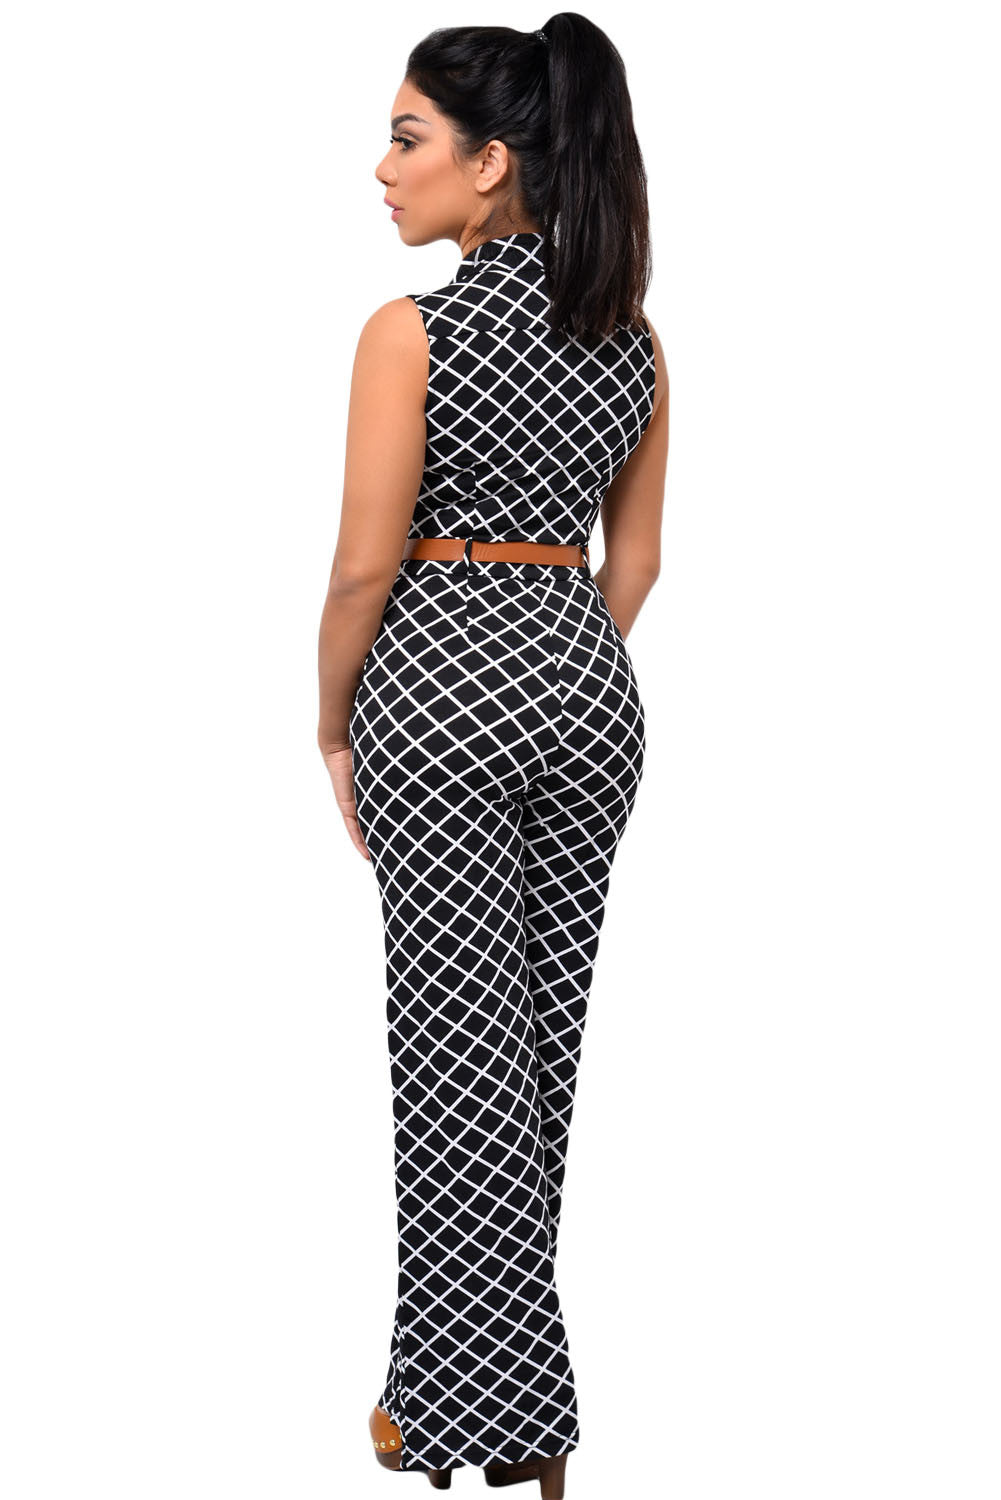 Flattering Lattice Design Print Belted Wide Leg Her Chic Jumpsuit